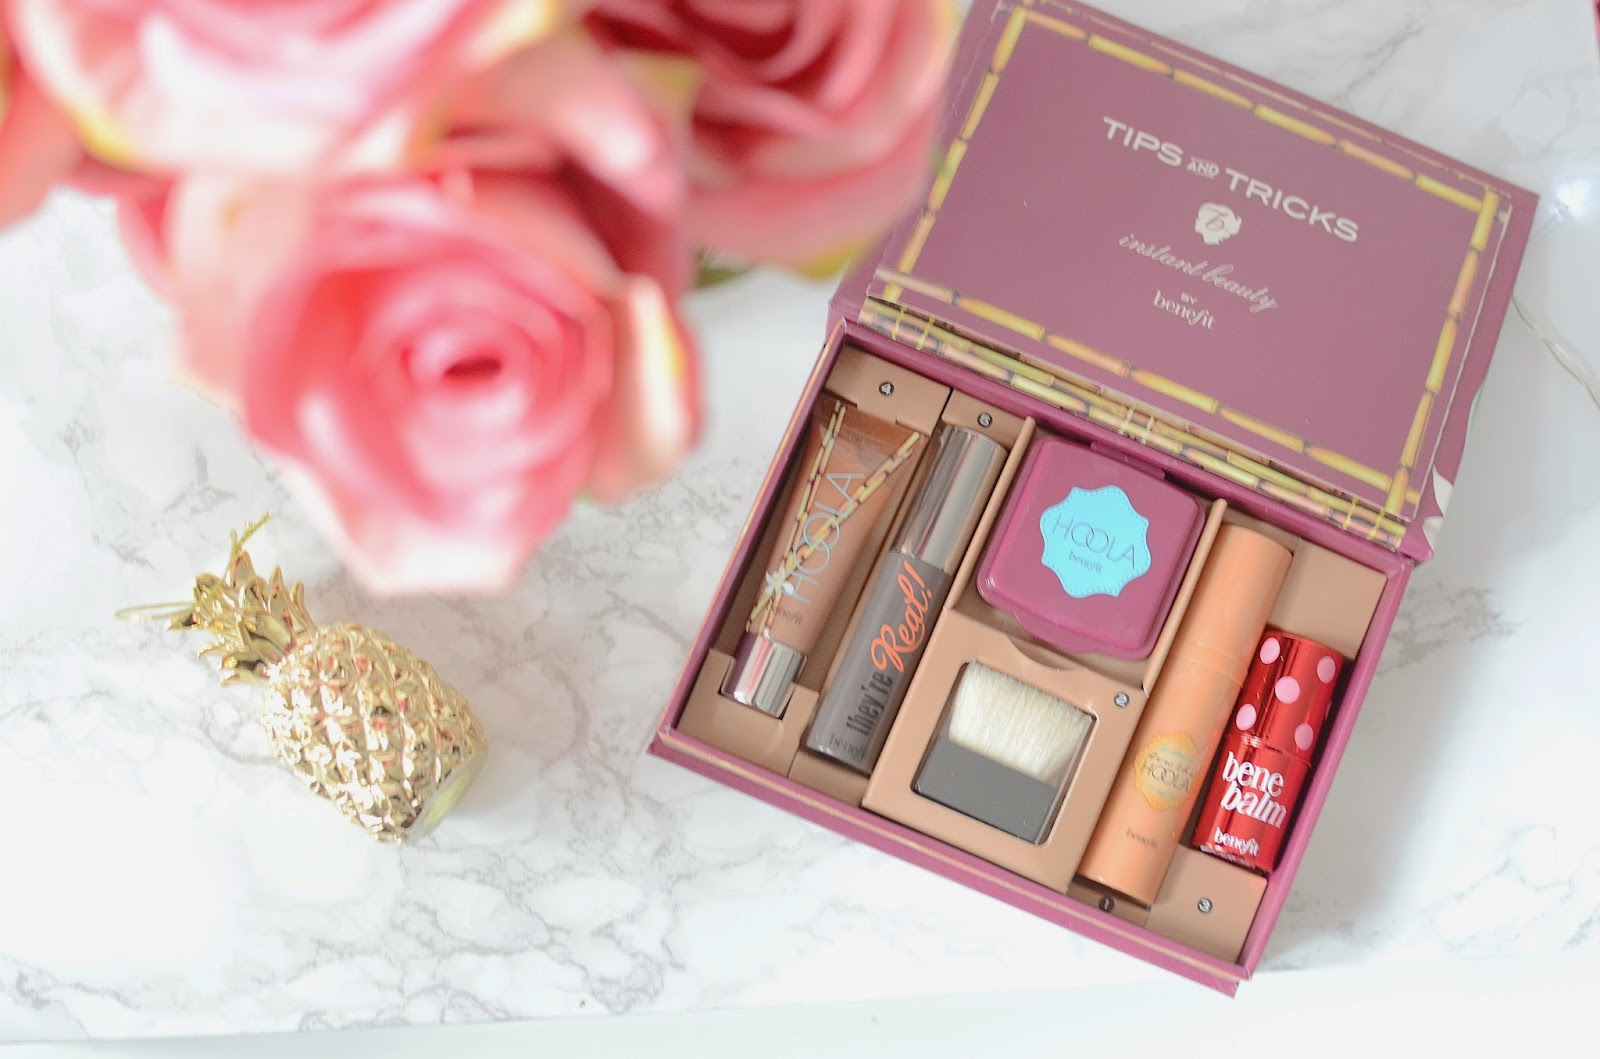 benefit, benefit cosmetics, benefit do the hoola kit, benefit hoola, make up, beauty, bronzer, bronze, summer kit